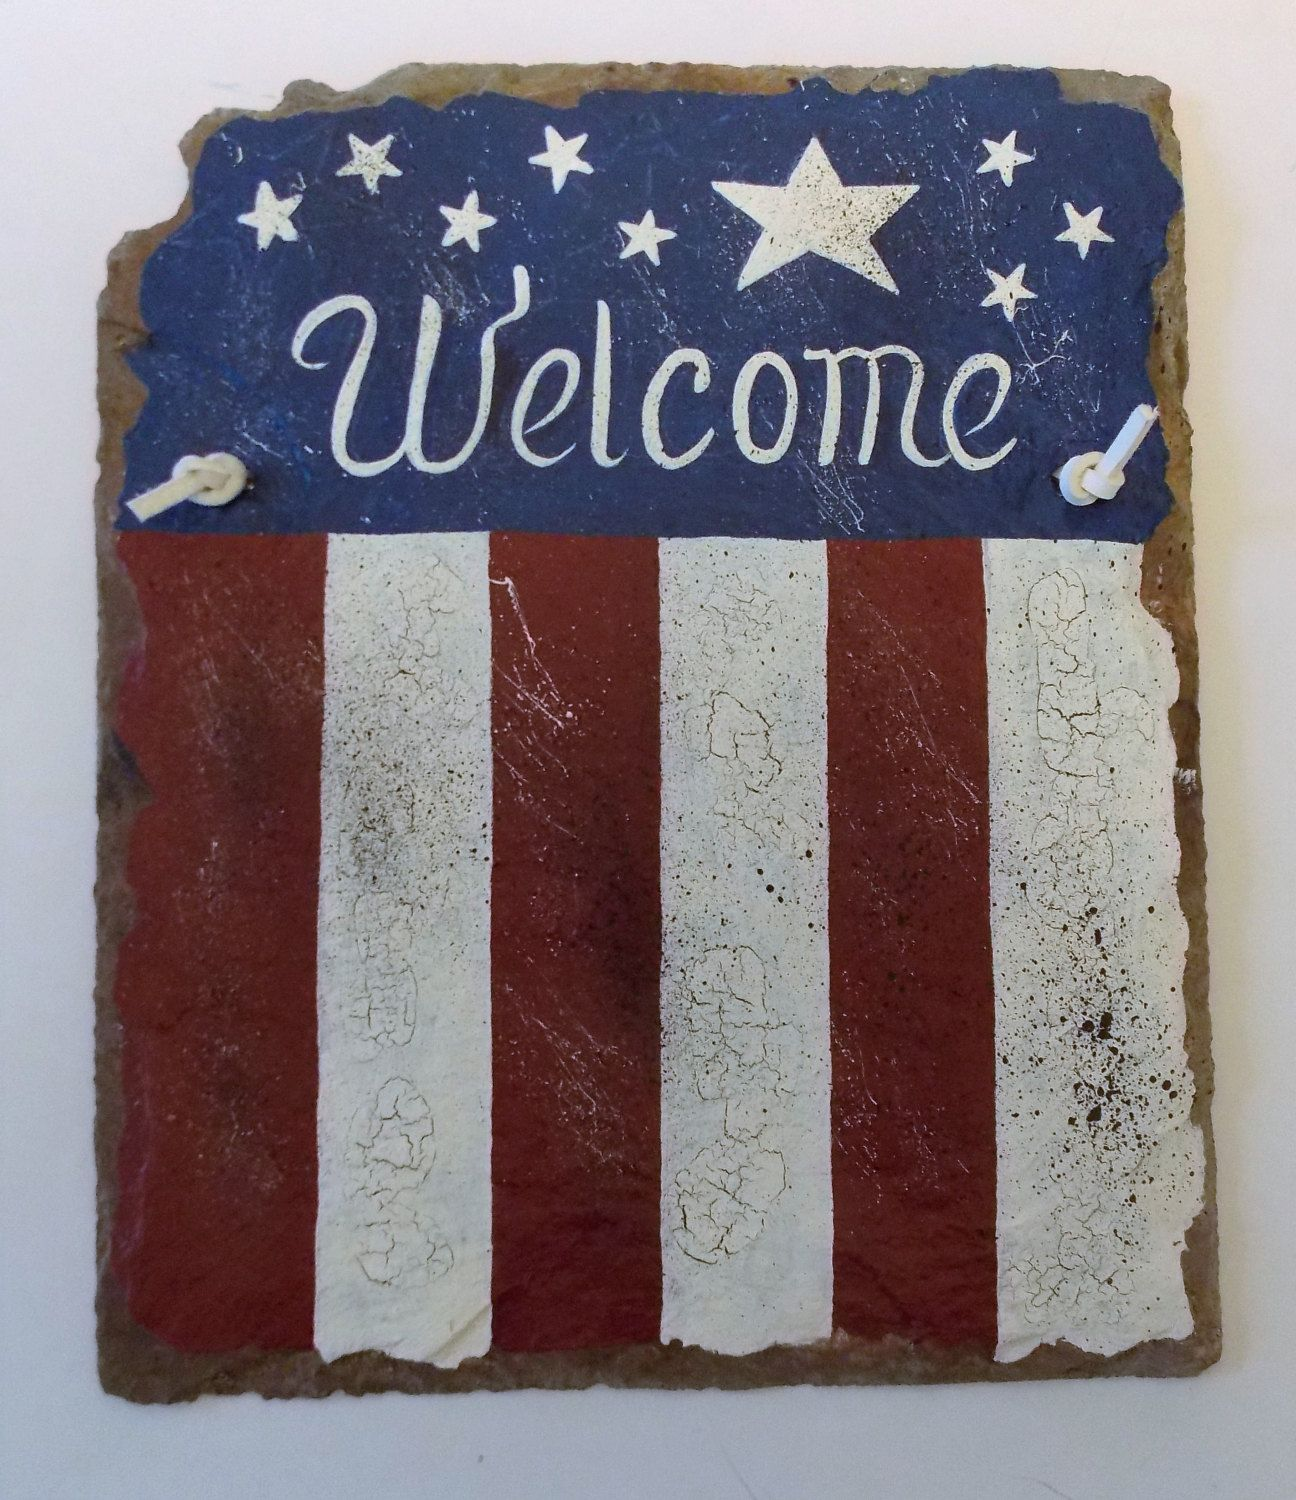 Decorative Slate Signs Extraordinary Welcome Slate Sign Hand Painted Slate Patriotic Slate Wall Art Decorating Inspiration